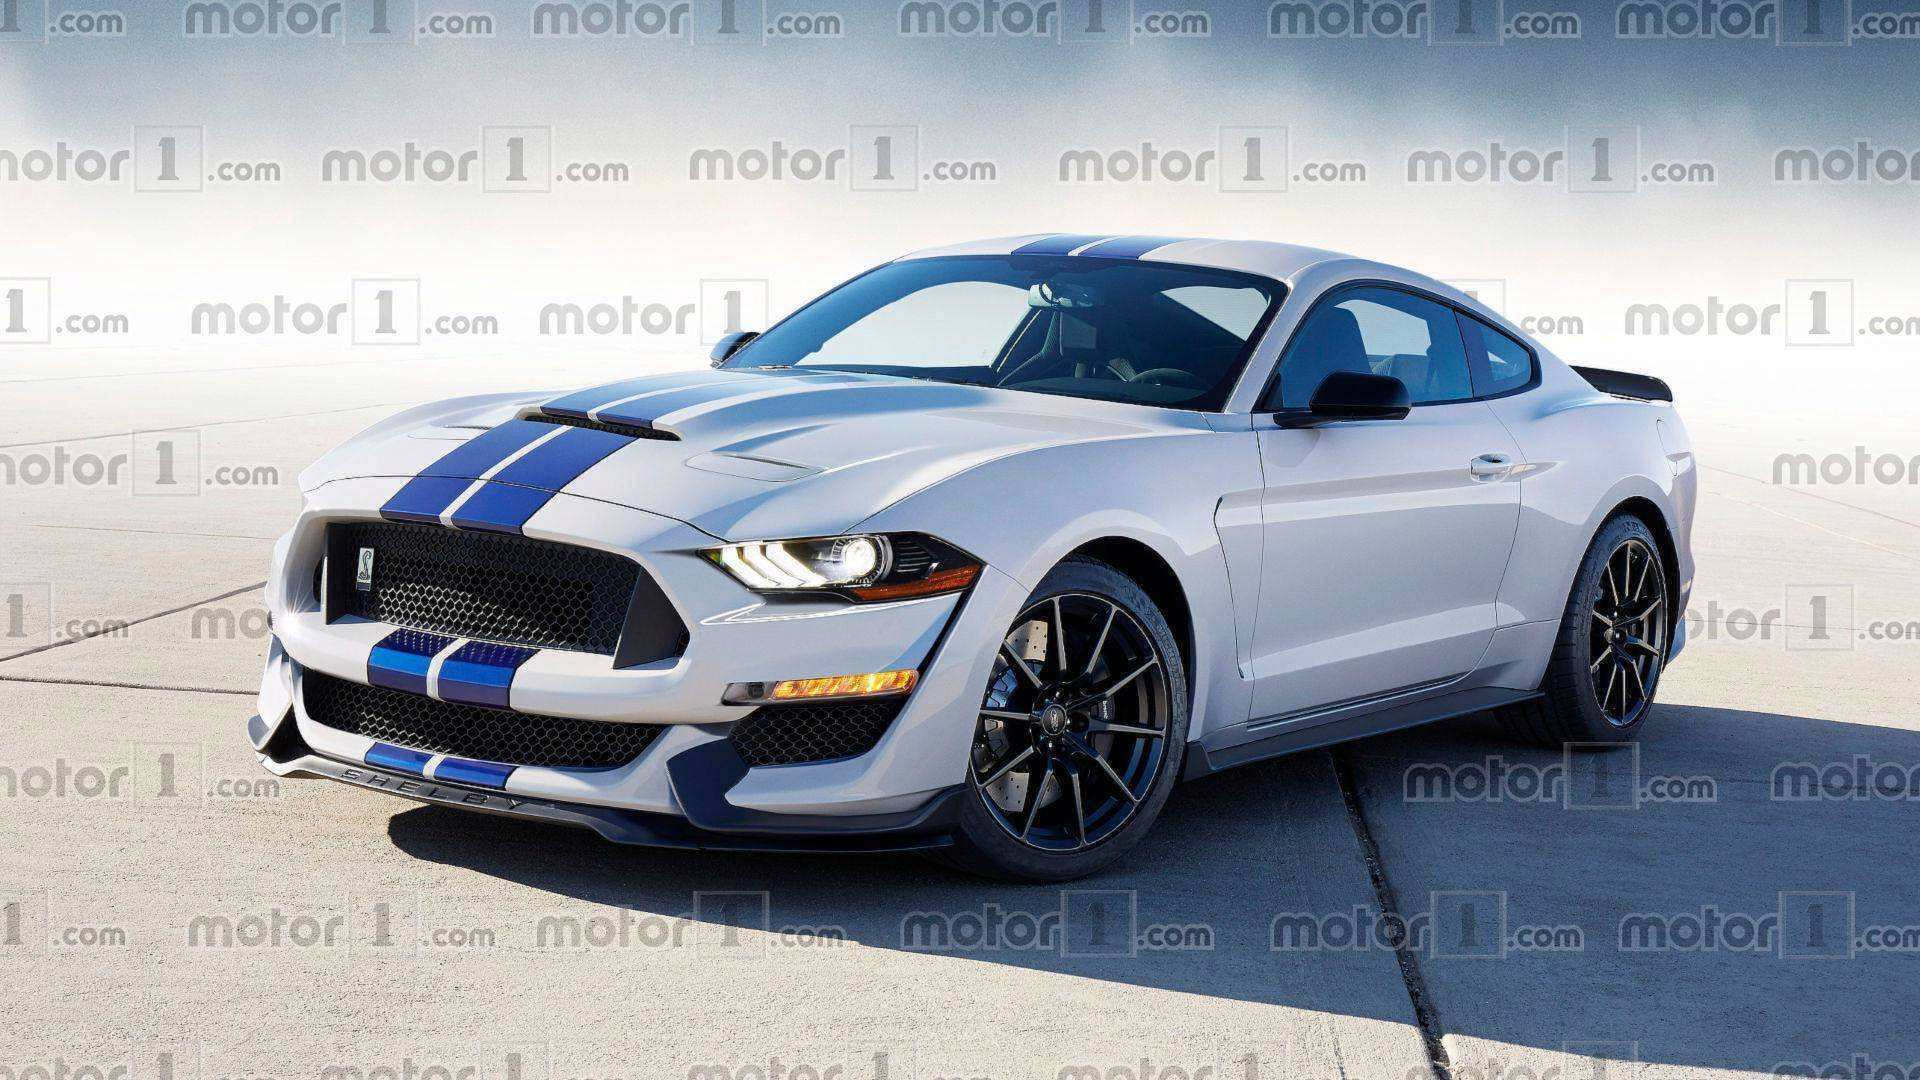 63 All New Ford Mustang 2020 Gt500 Wallpaper